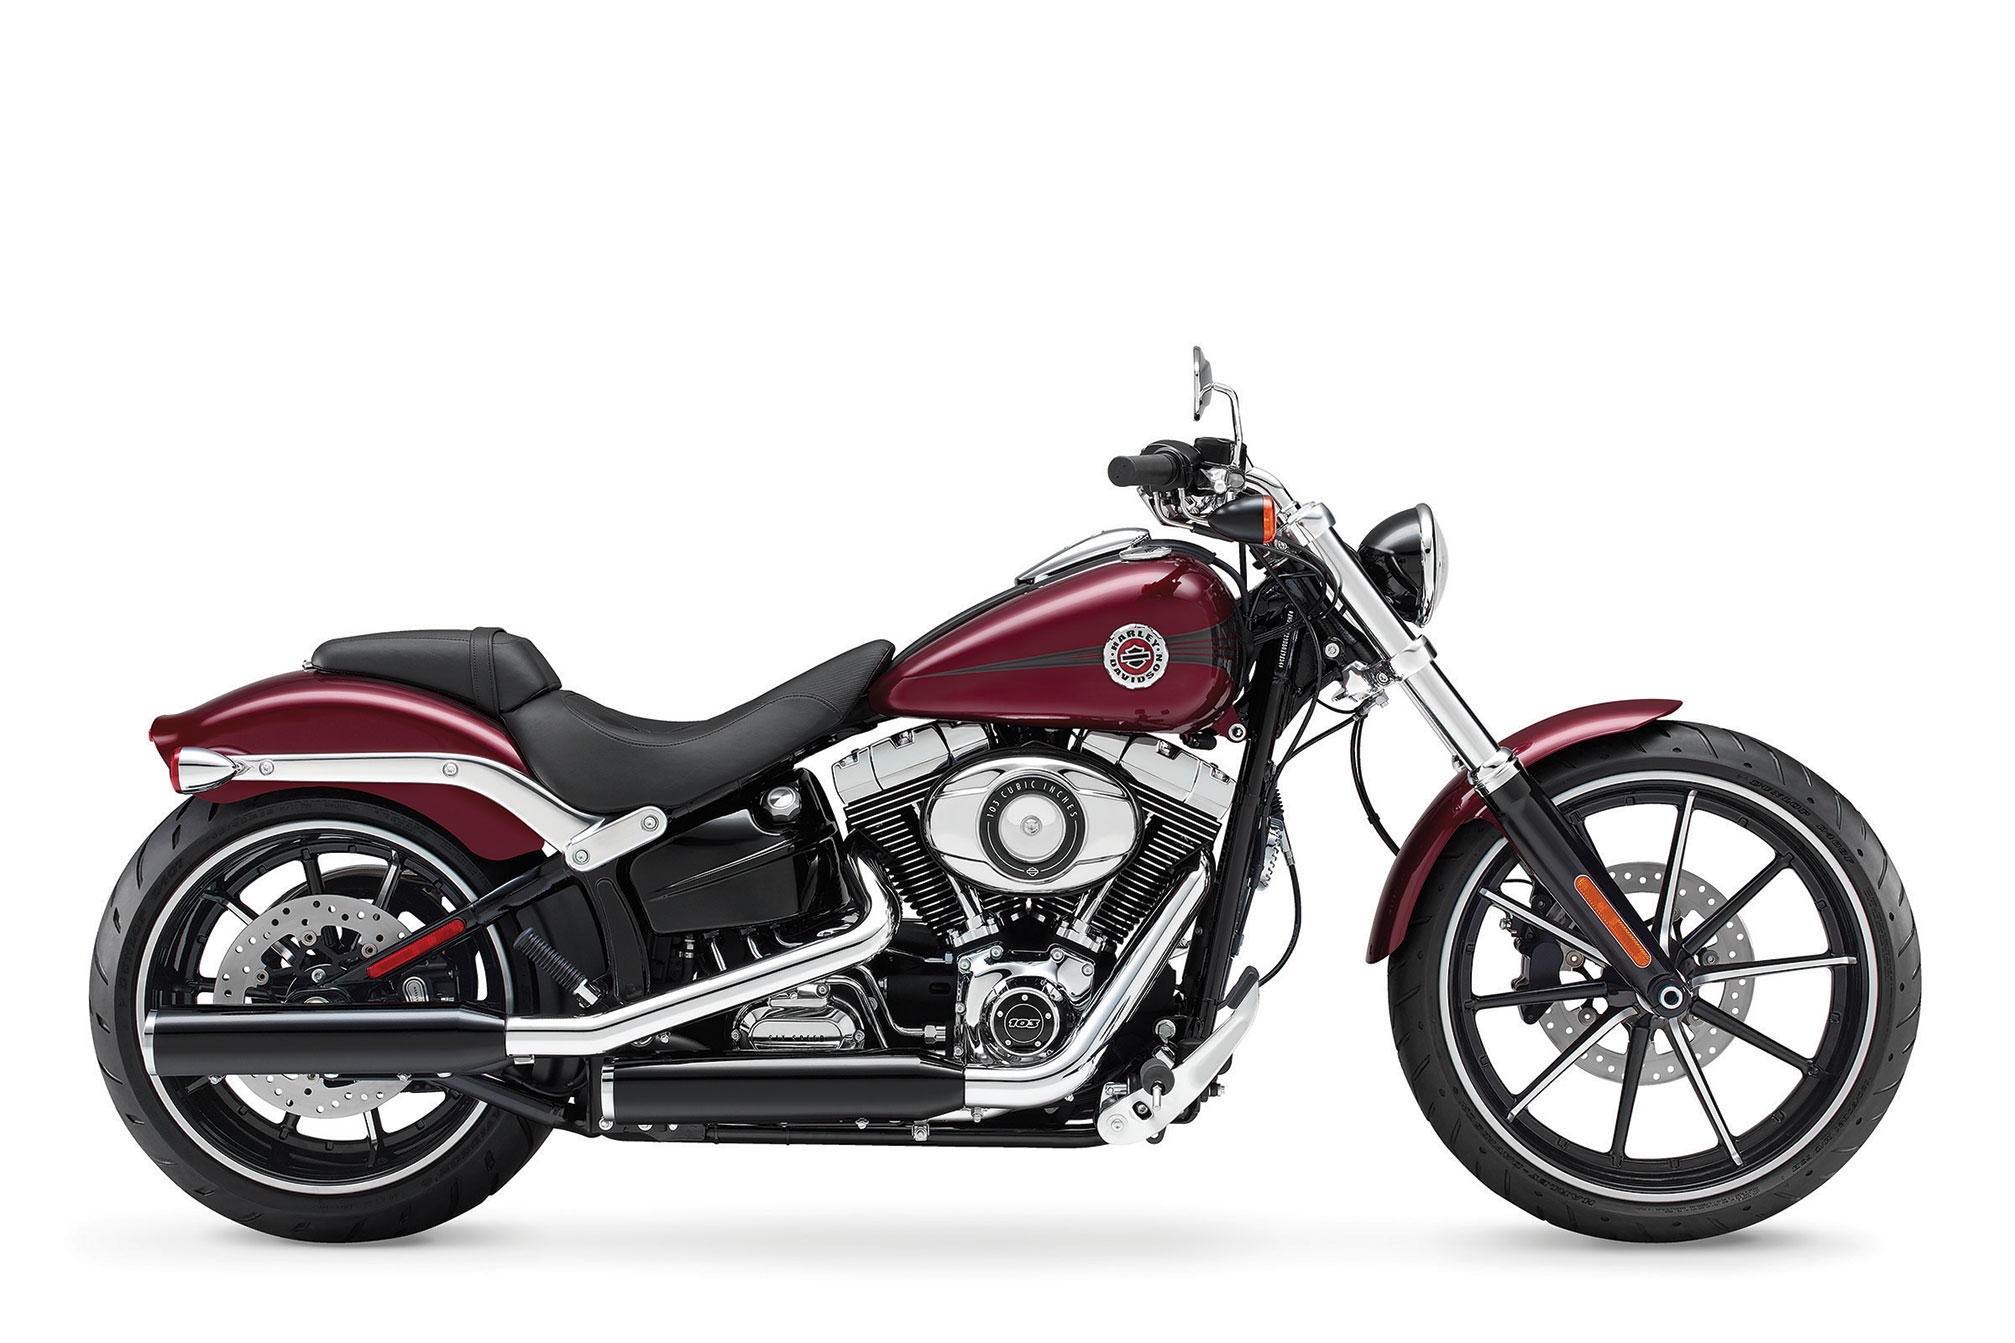 pc wallpaper Harley-Davidson FXSB Breakout 2015 - Red color